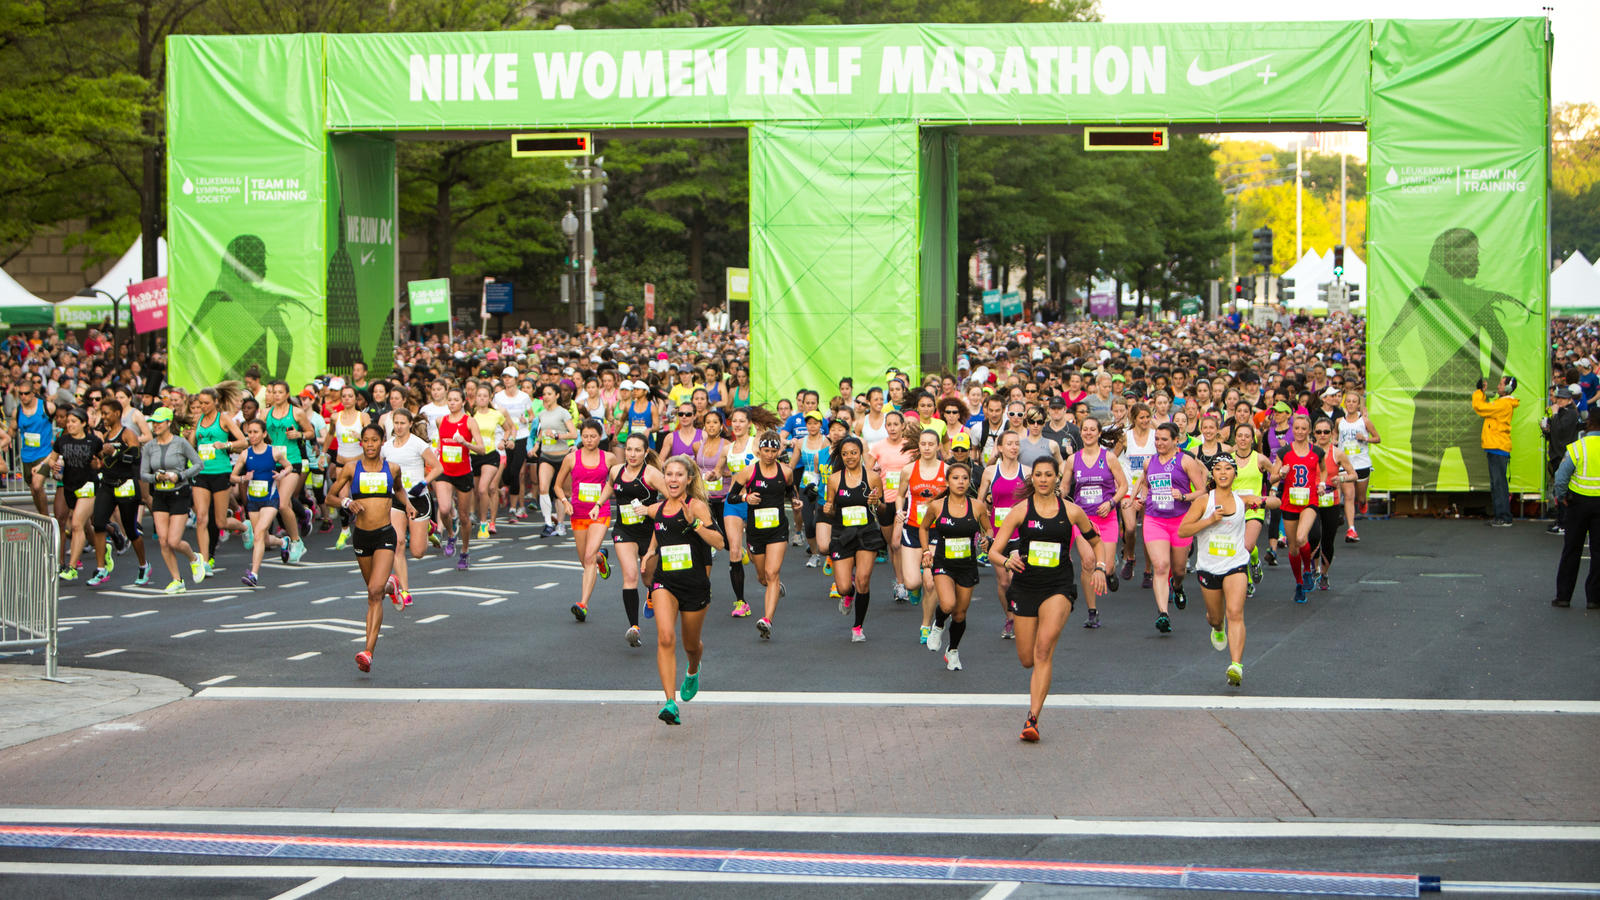 Nike Women Half Marathon Washington, DC